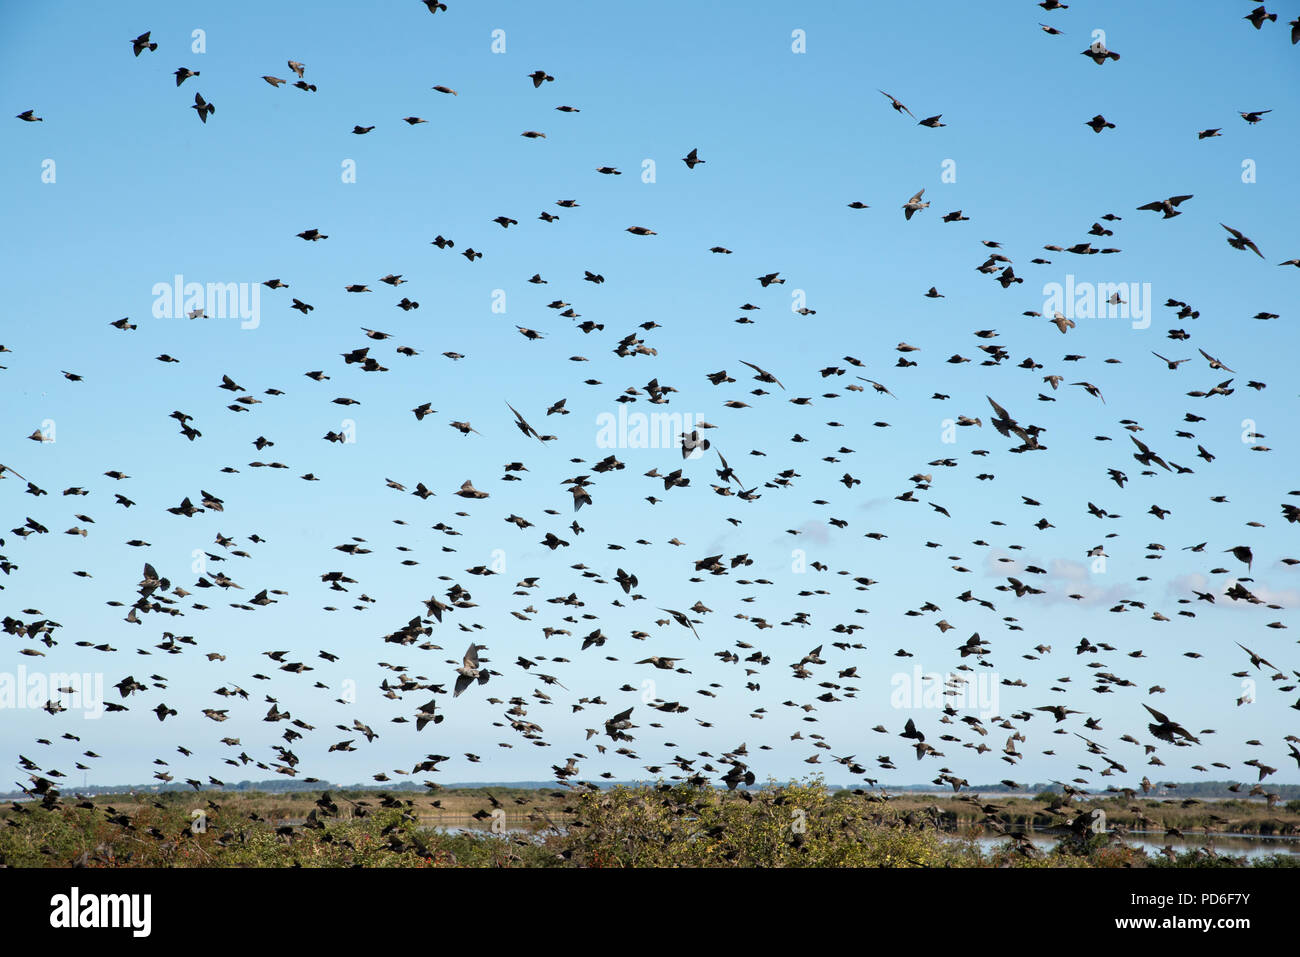 Thousamds of common starlings flocking and feeding at the fruits of common sea buckthorn at the tip of Alter Bessin on Germany's Hiddensee island. Stock Photo